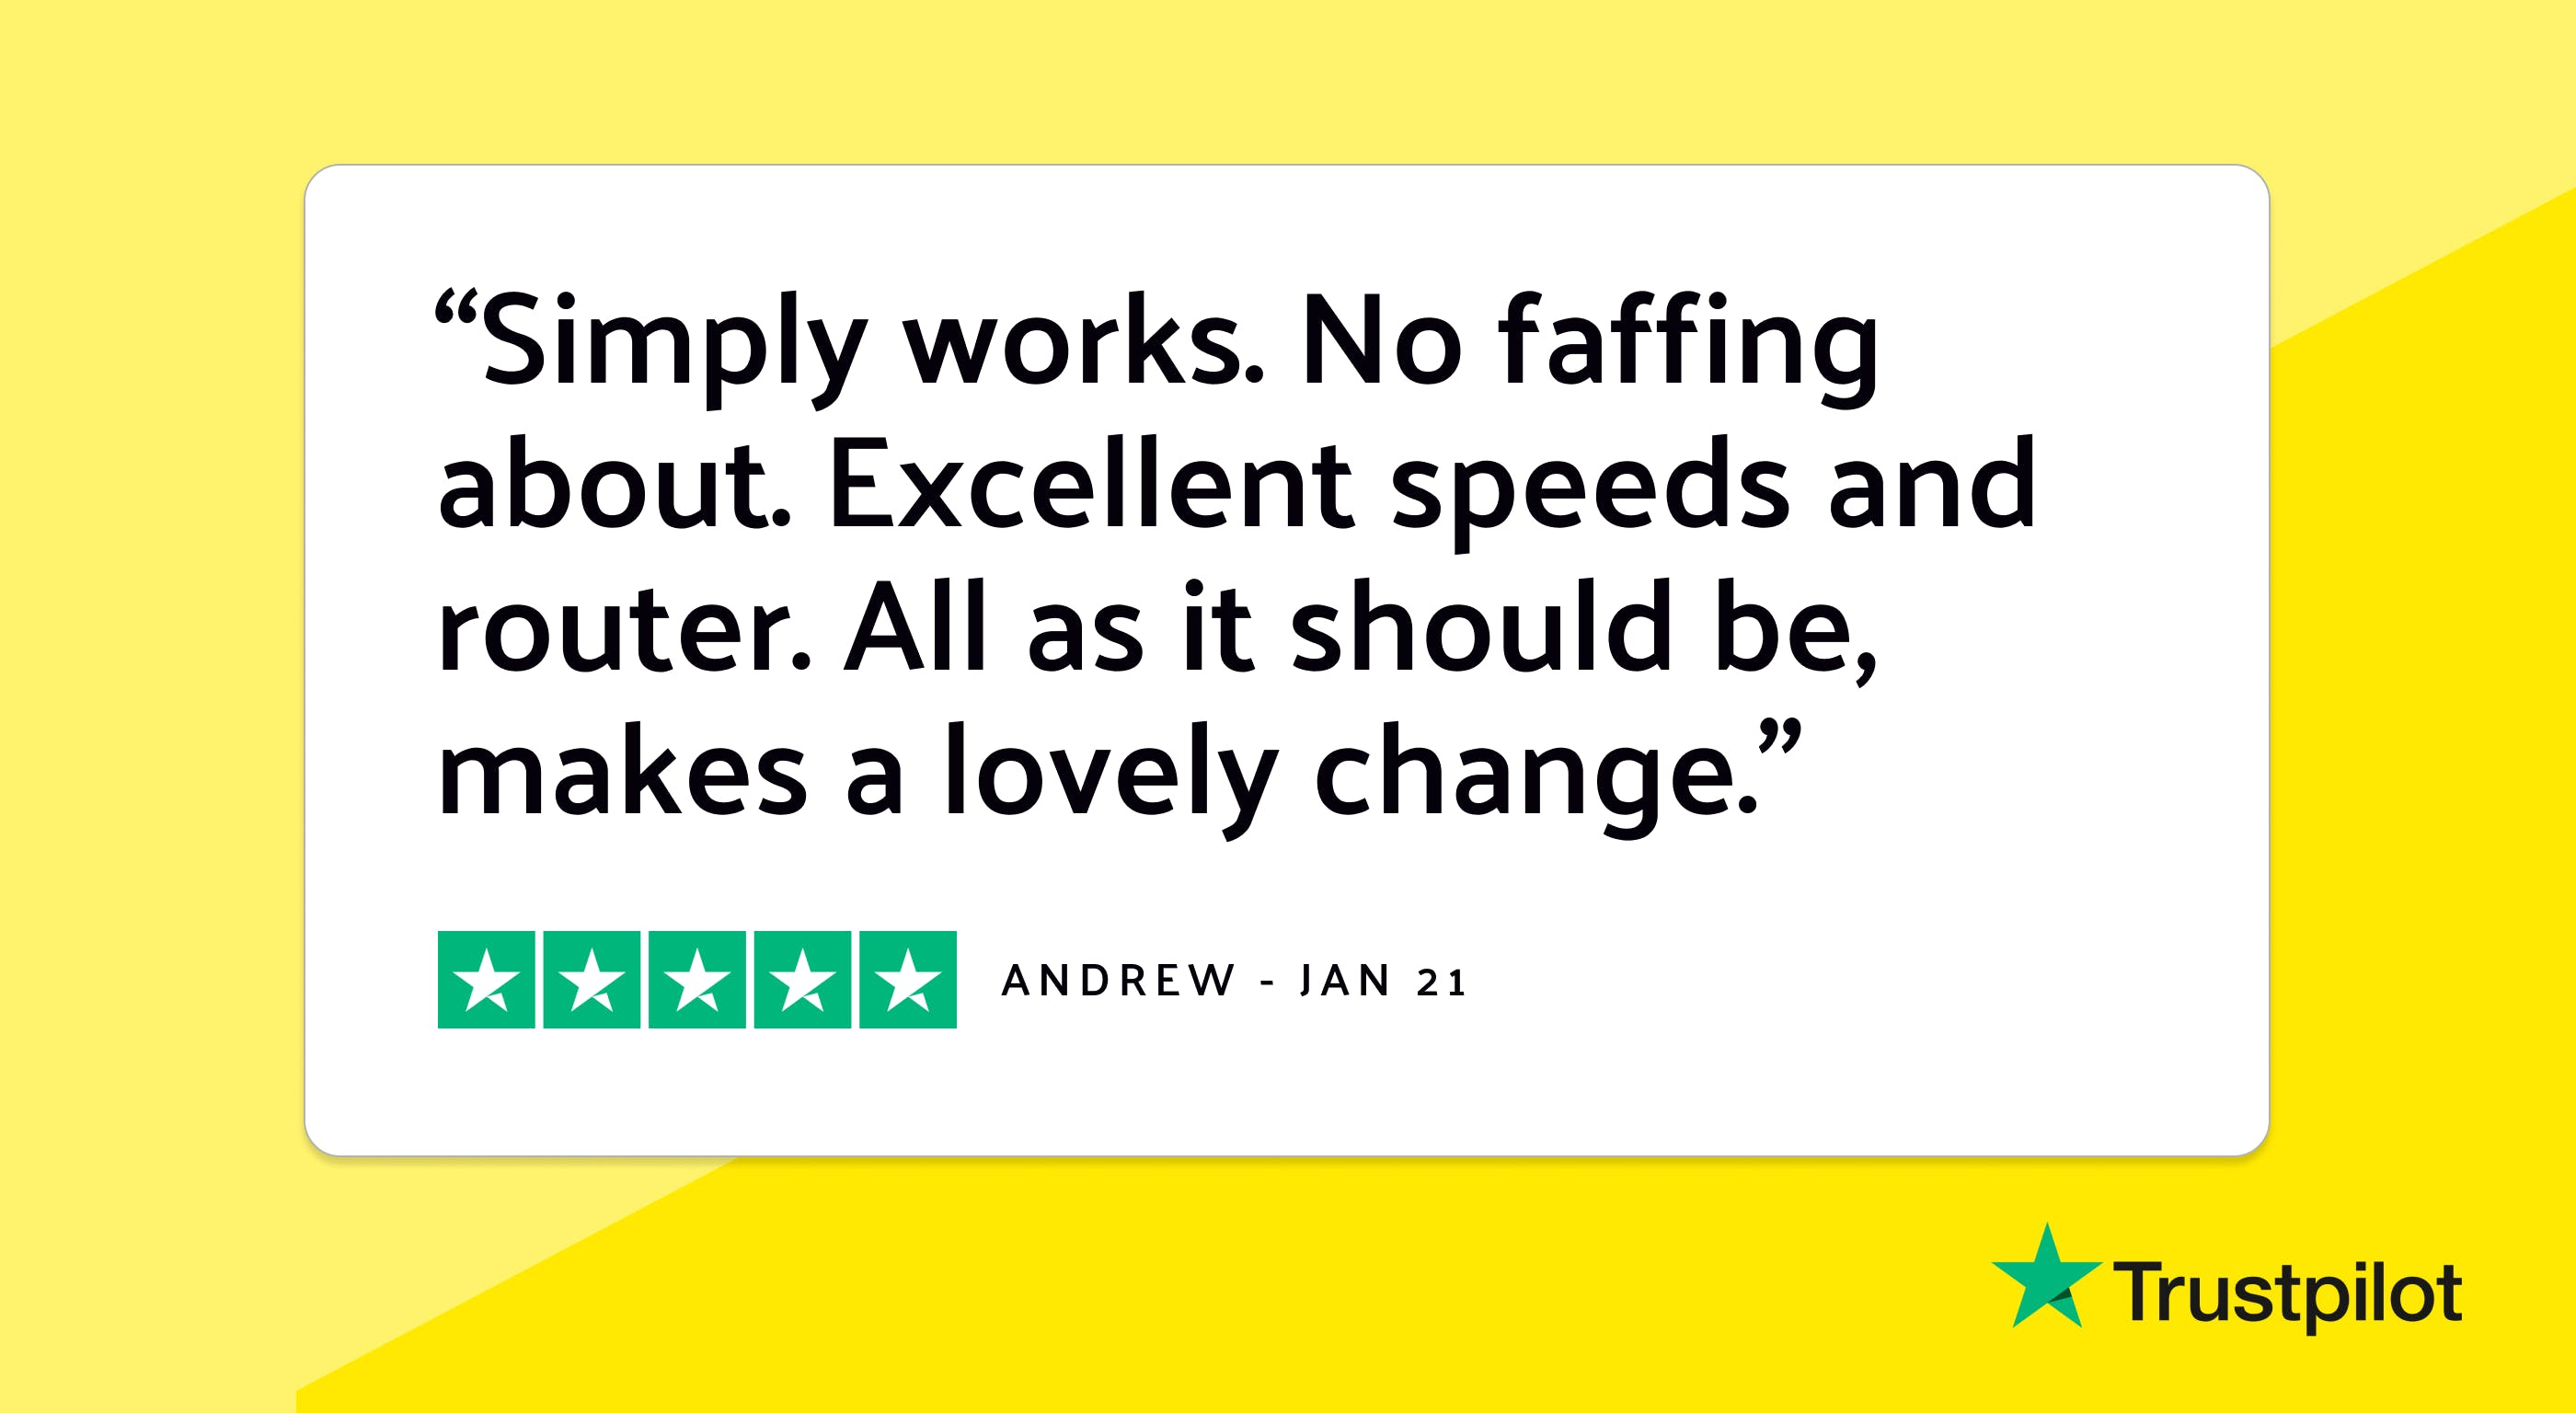 """Trustpilot review: """"Simply works. No faffing about. Excellent speeds and router. All as it should be, makes a lovely change."""""""